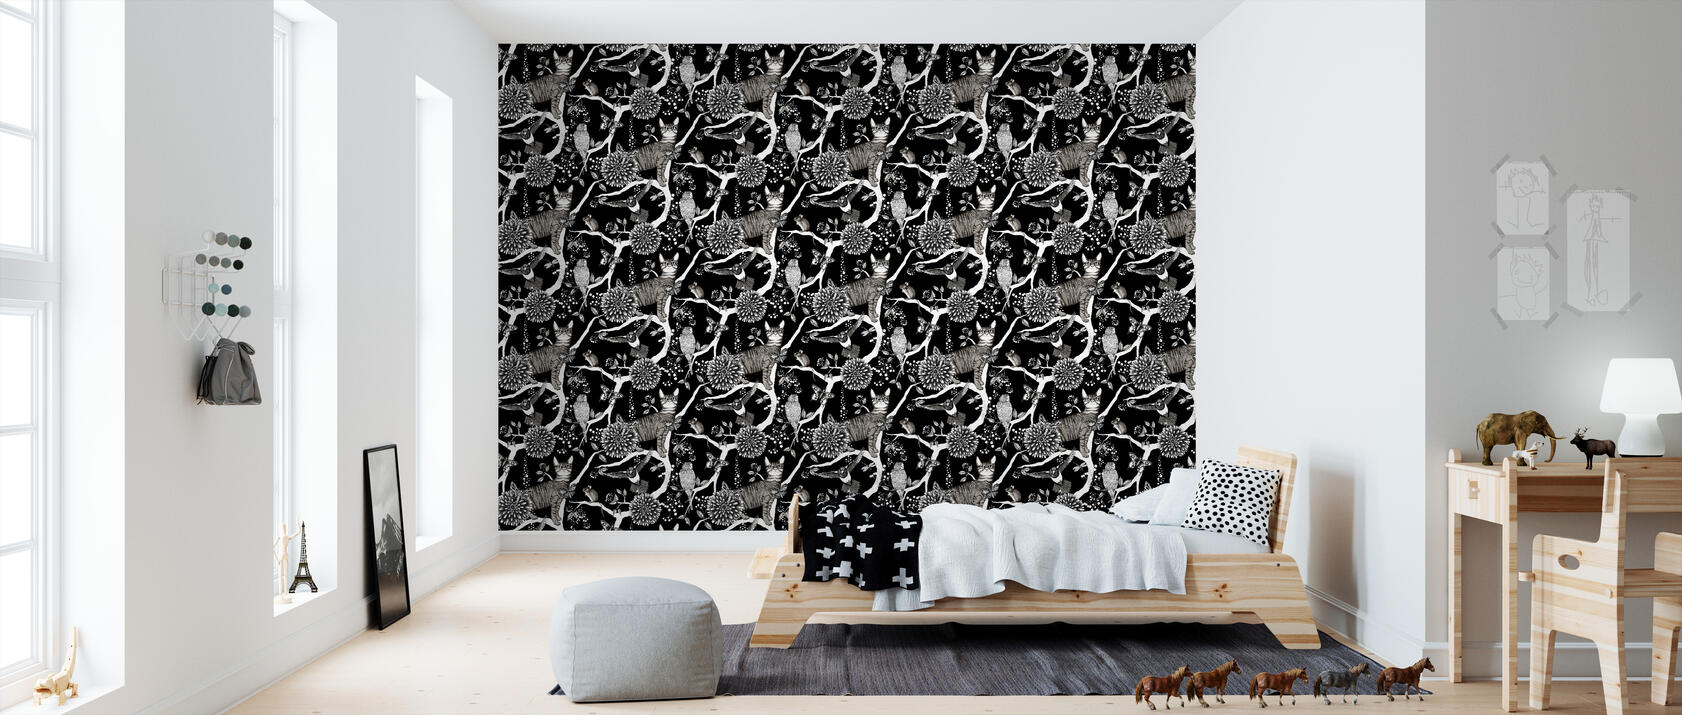 catzy tapete nach ma photowall. Black Bedroom Furniture Sets. Home Design Ideas